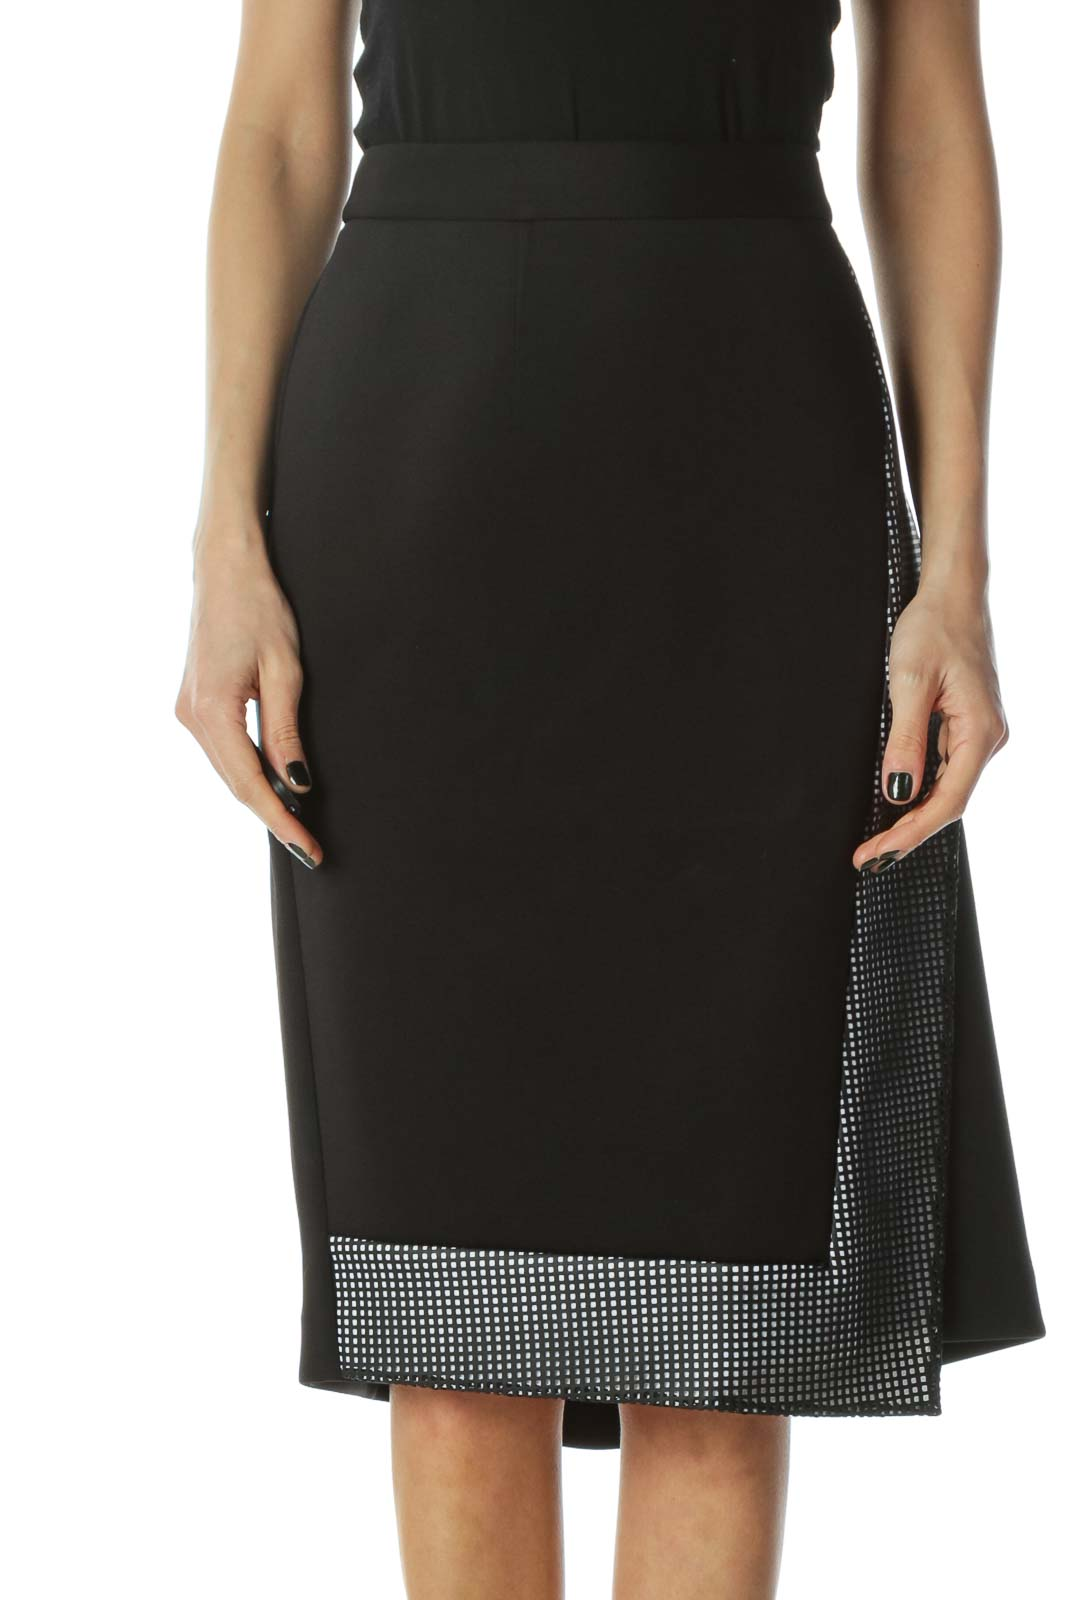 Black Asymemetric Skirt